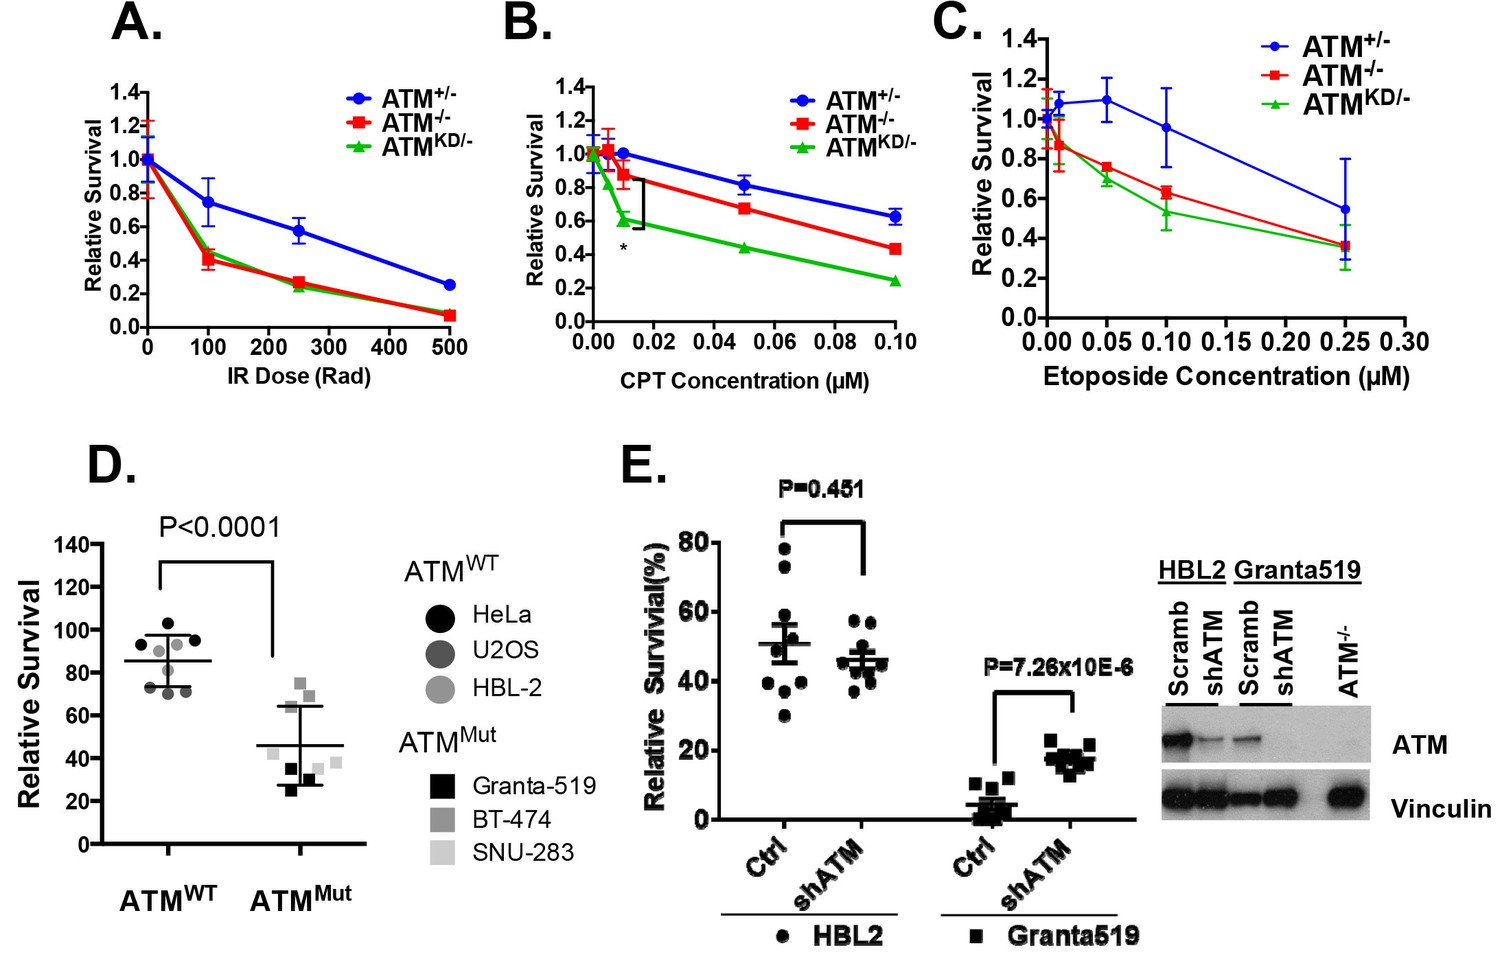 Kinase Dead Atm Protein Is Highly Oncogenic And Can Be Preferentially Targeted By Topo Isomerase I Inhibitors Elife